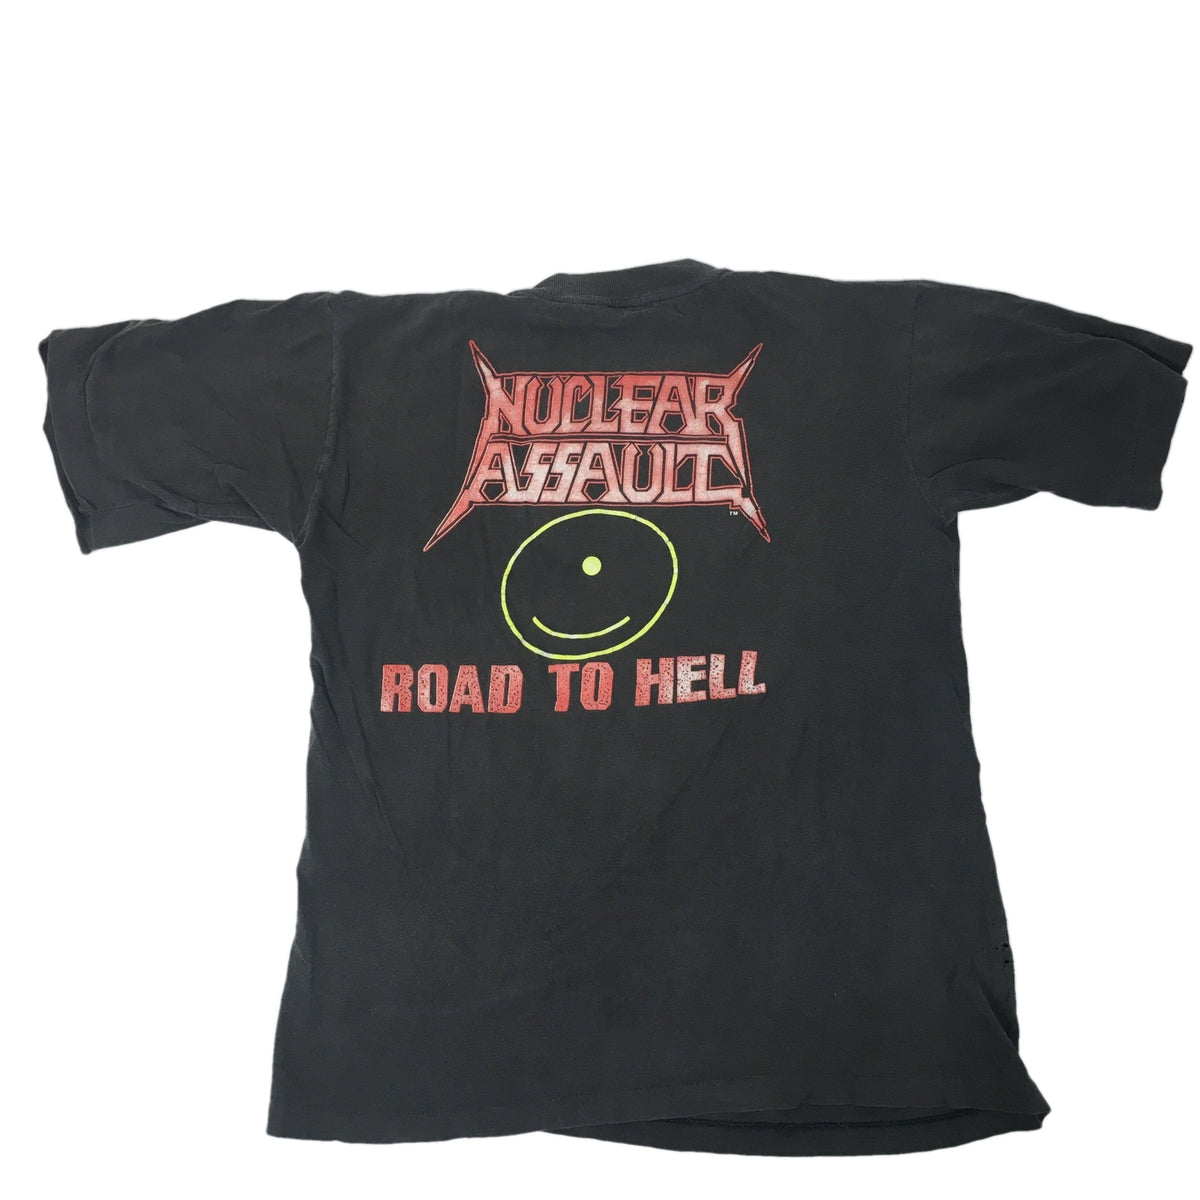 "Vintage Nuclear Assault ""Road To Hell"" T-shirt 1989 - jointcustodydc"